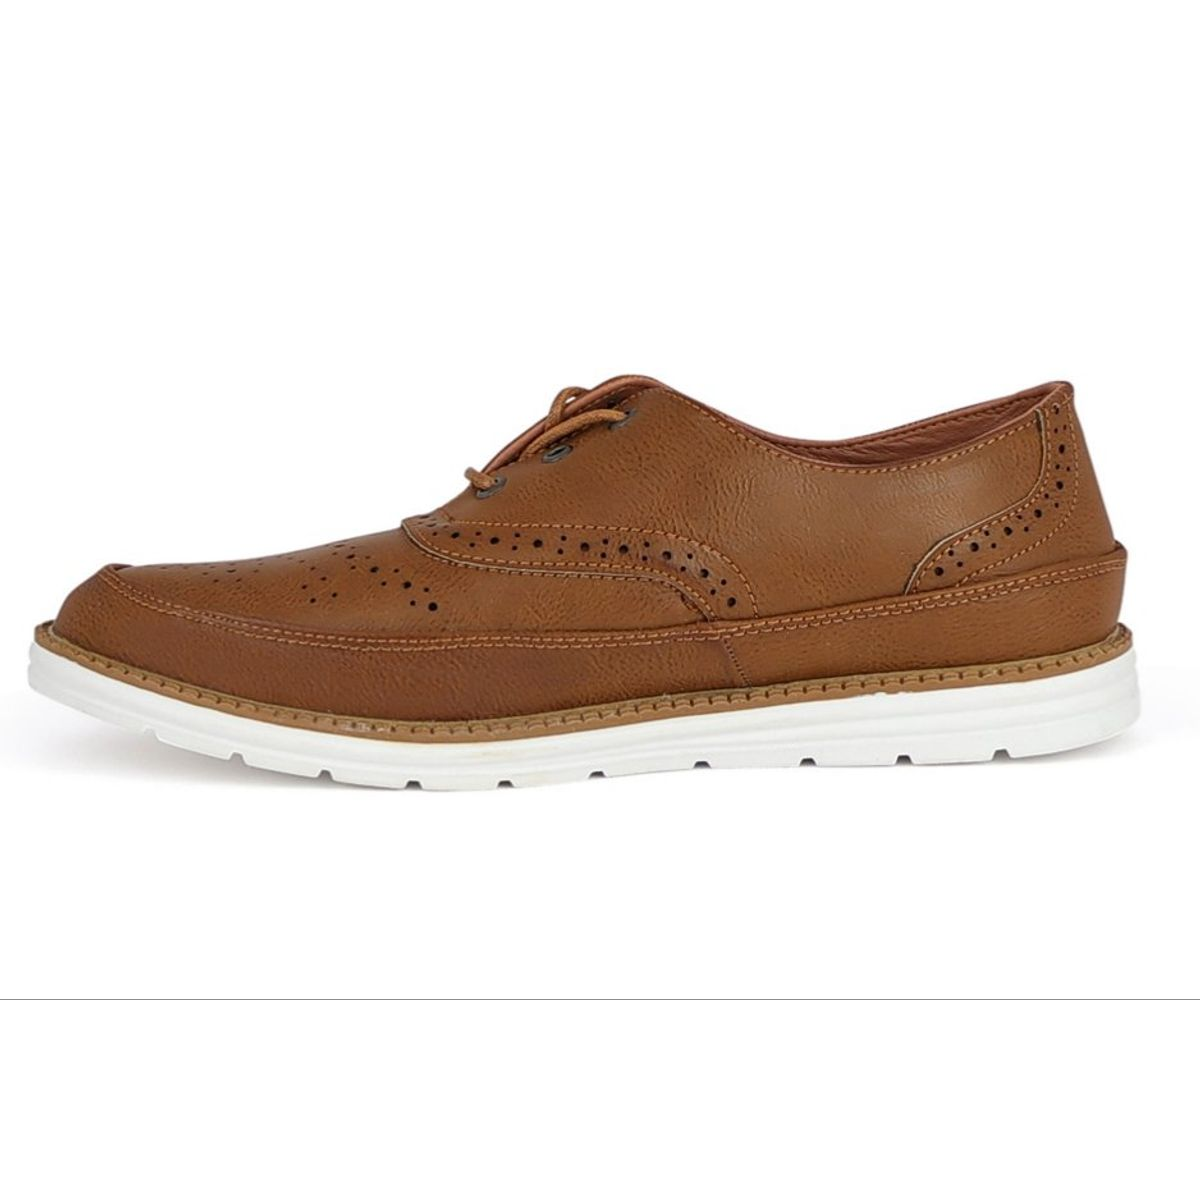 Calzari Semi-Casual Tan Men Shoes